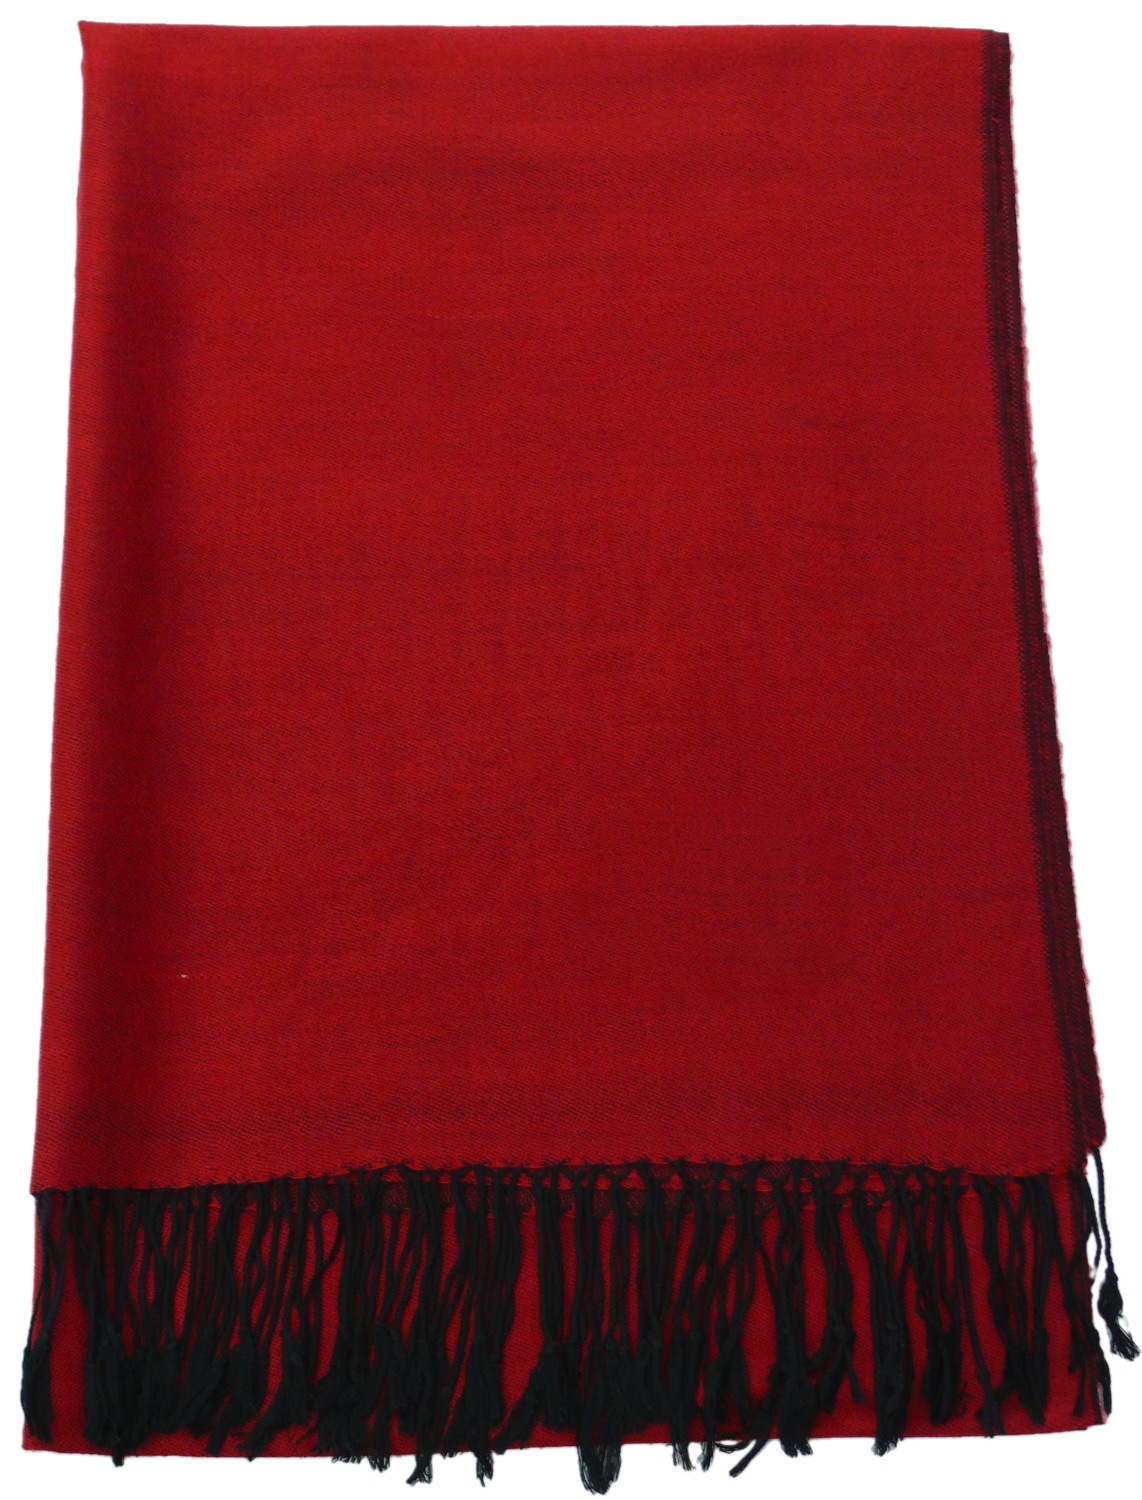 Red & Black Solid Color Design Pashmina Shawl Scarf Wrap Pashminas Shawls Scarves Wraps a1106-402